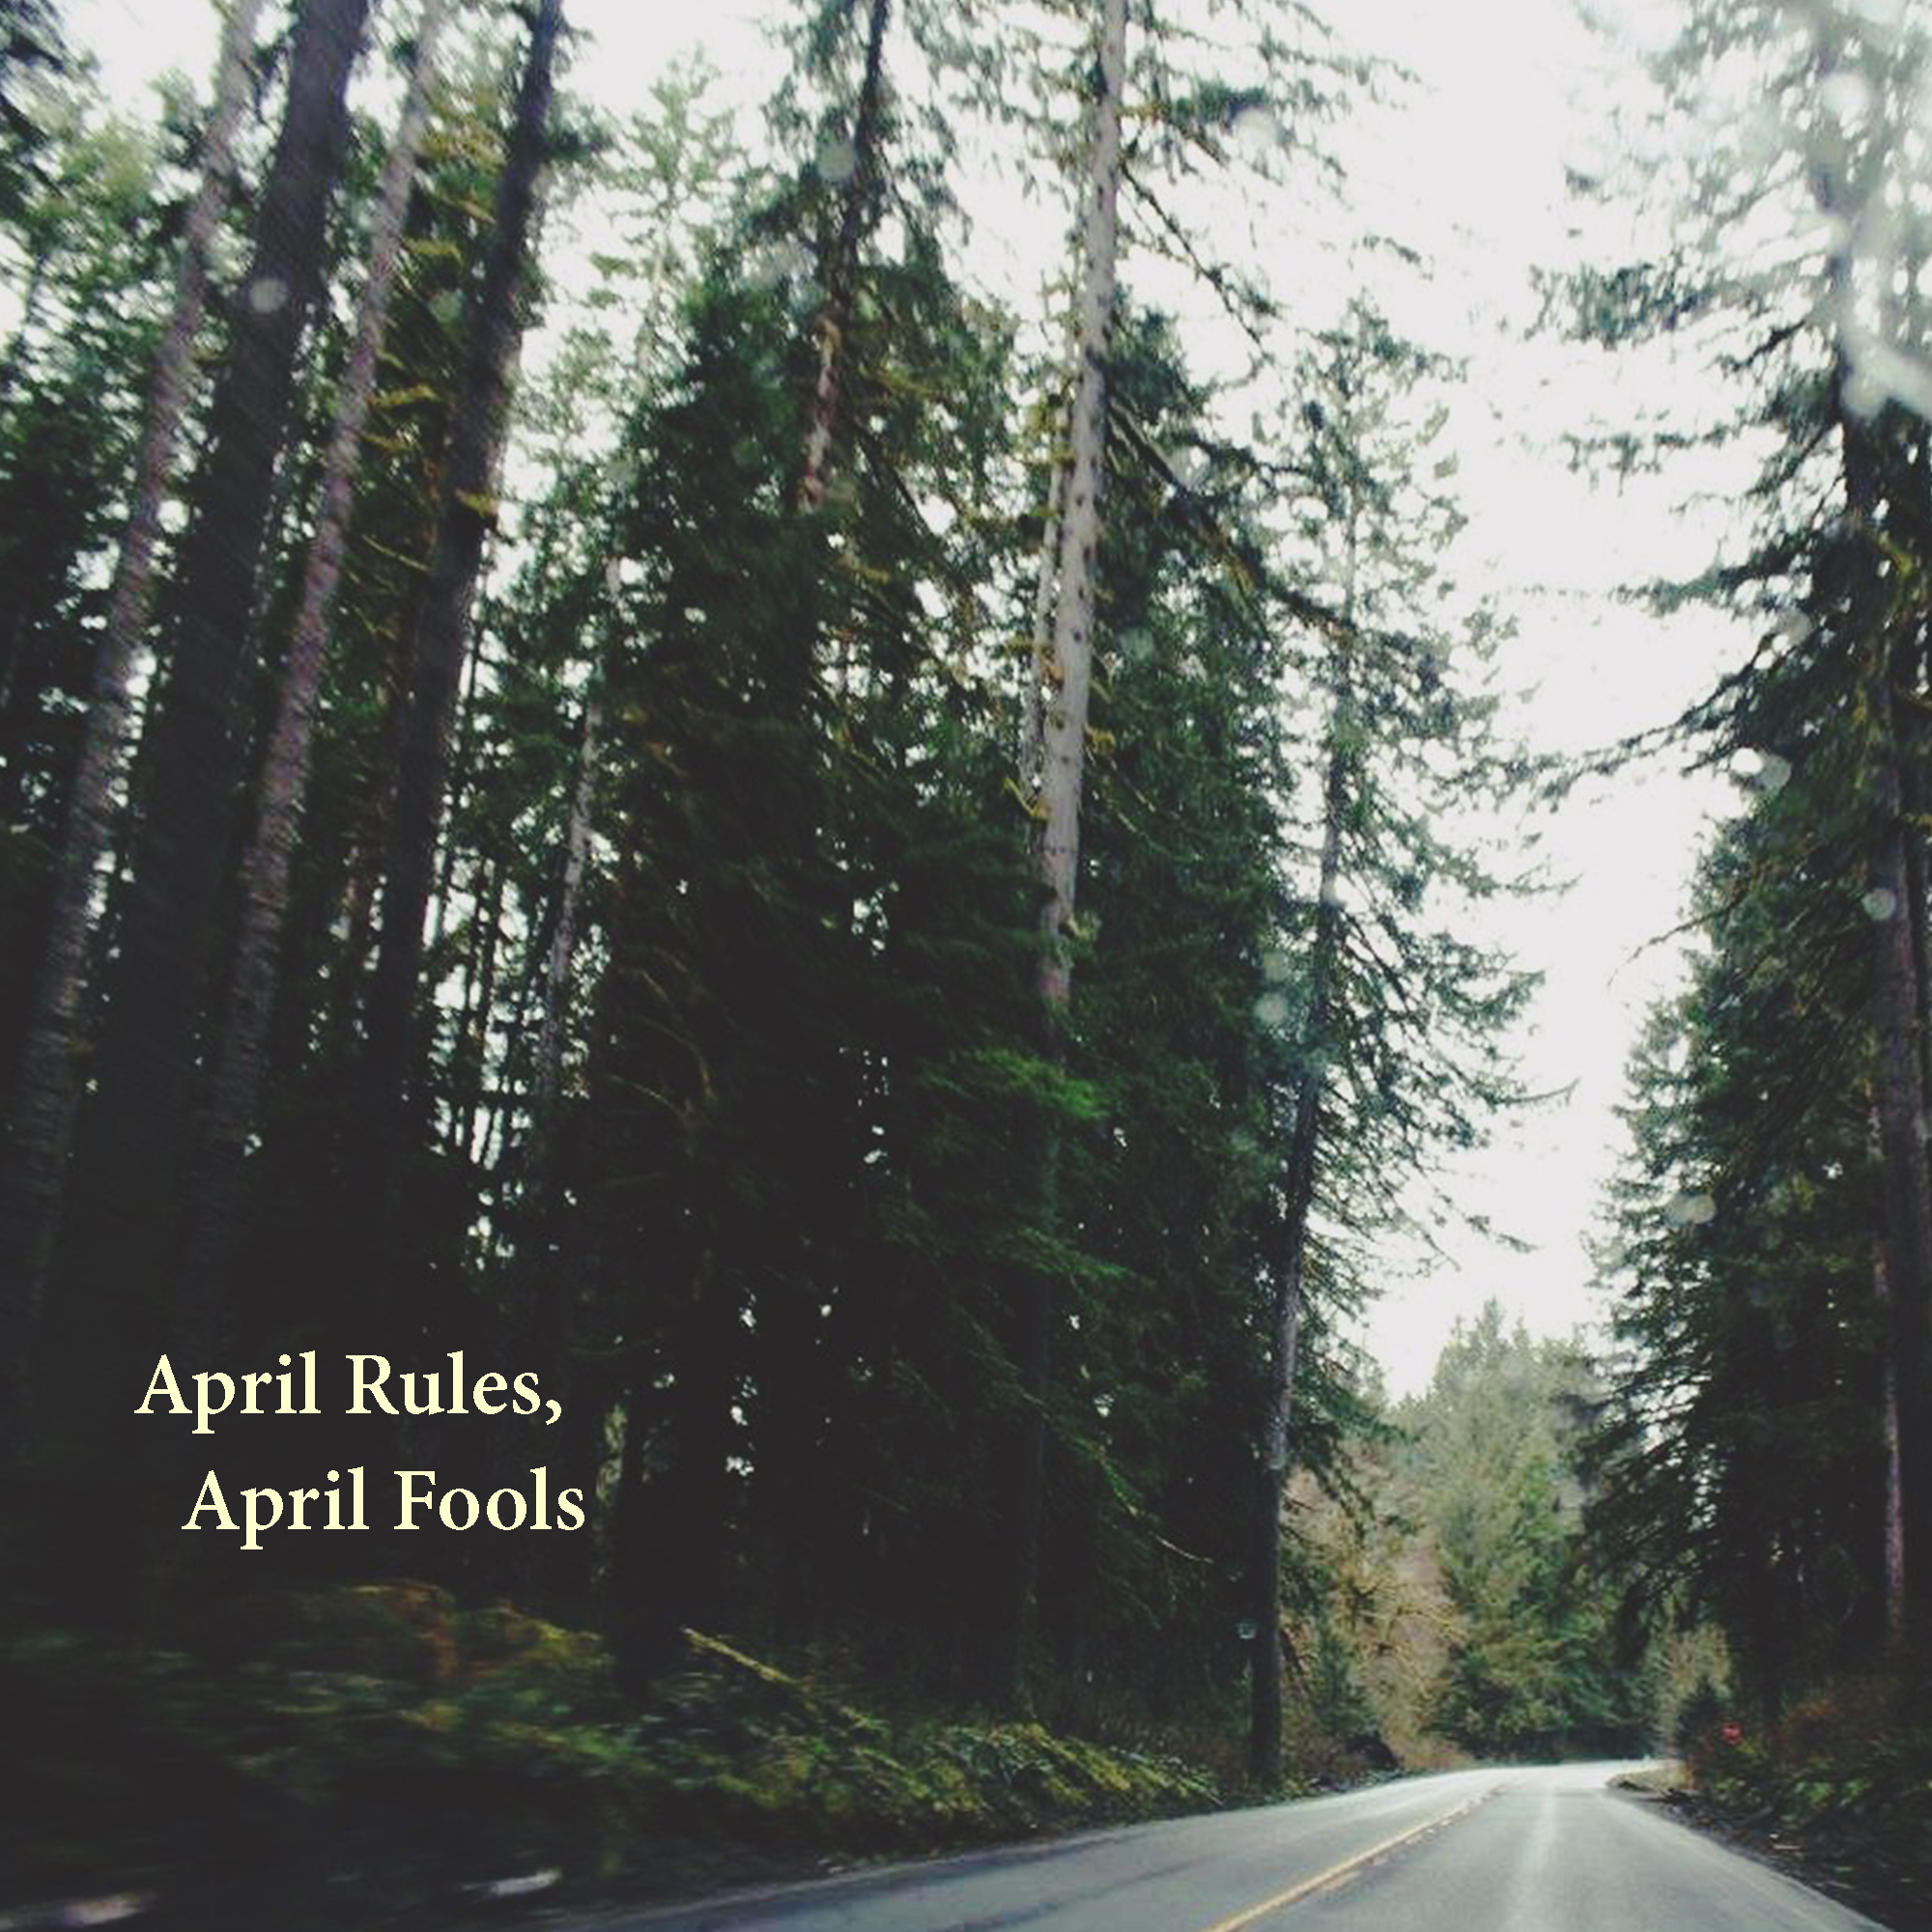 April Rules, April Fools   By Jae Melville.